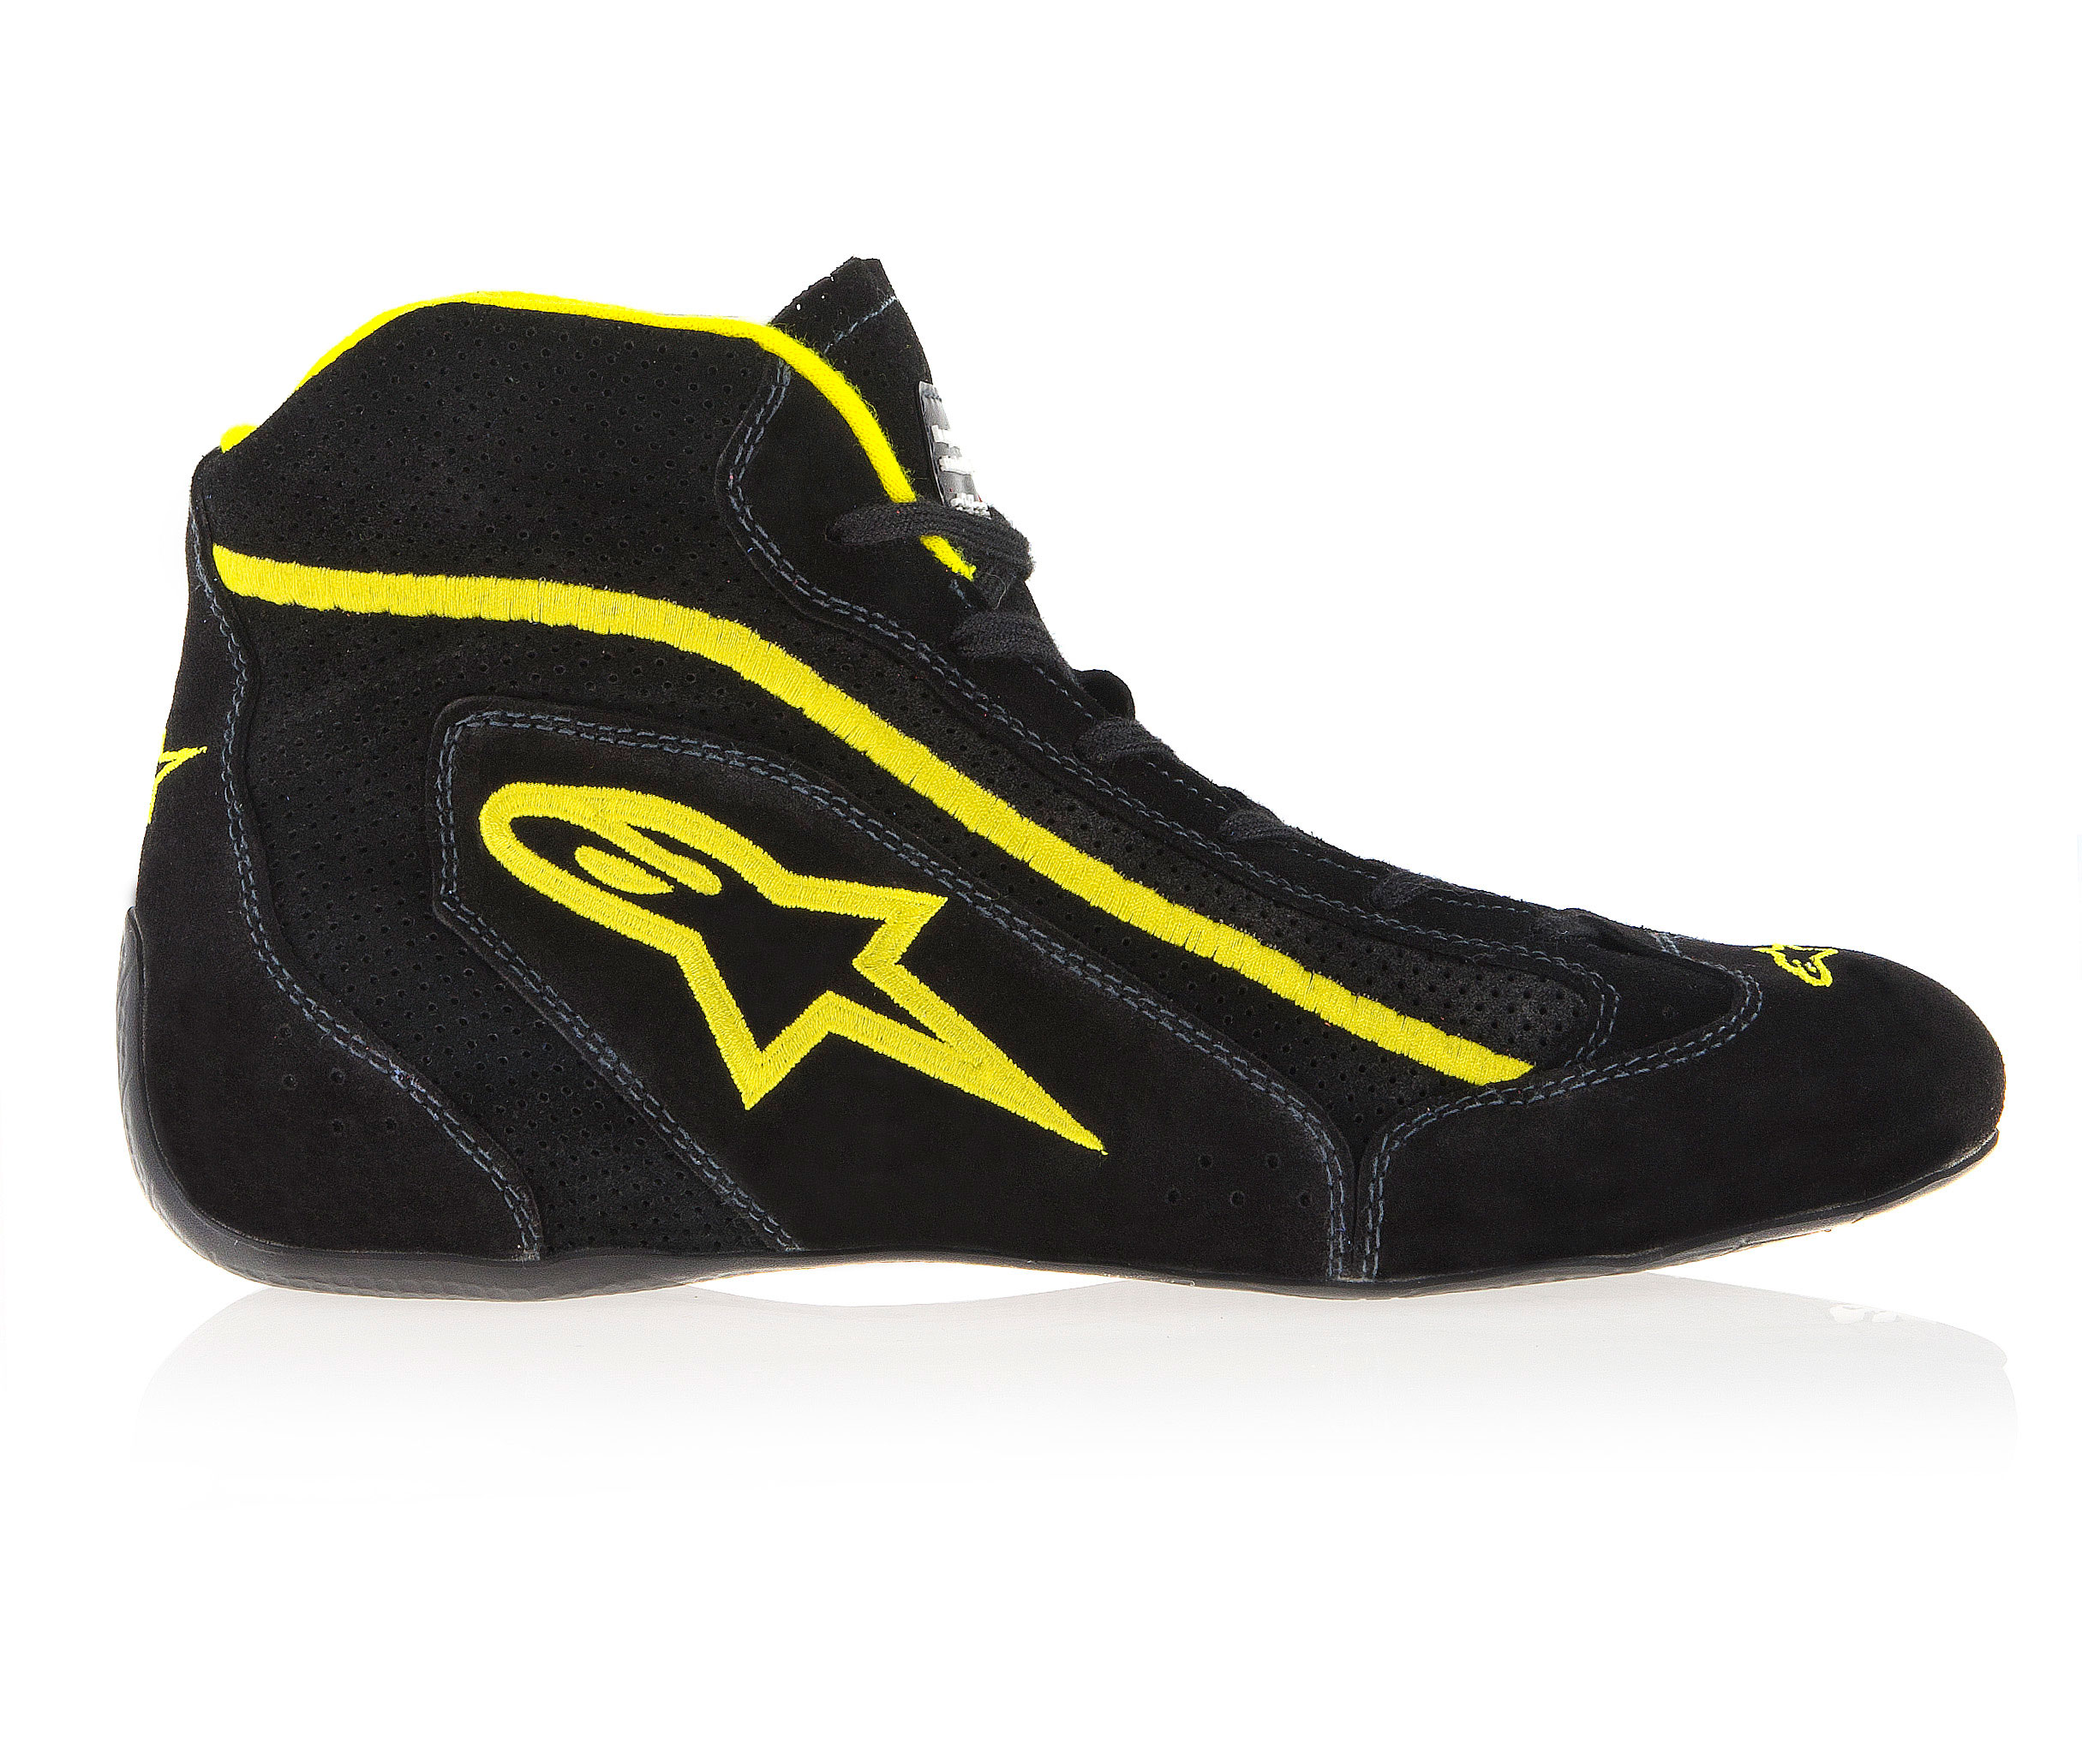 SP_SHOE_black_yellowfluo_rot3